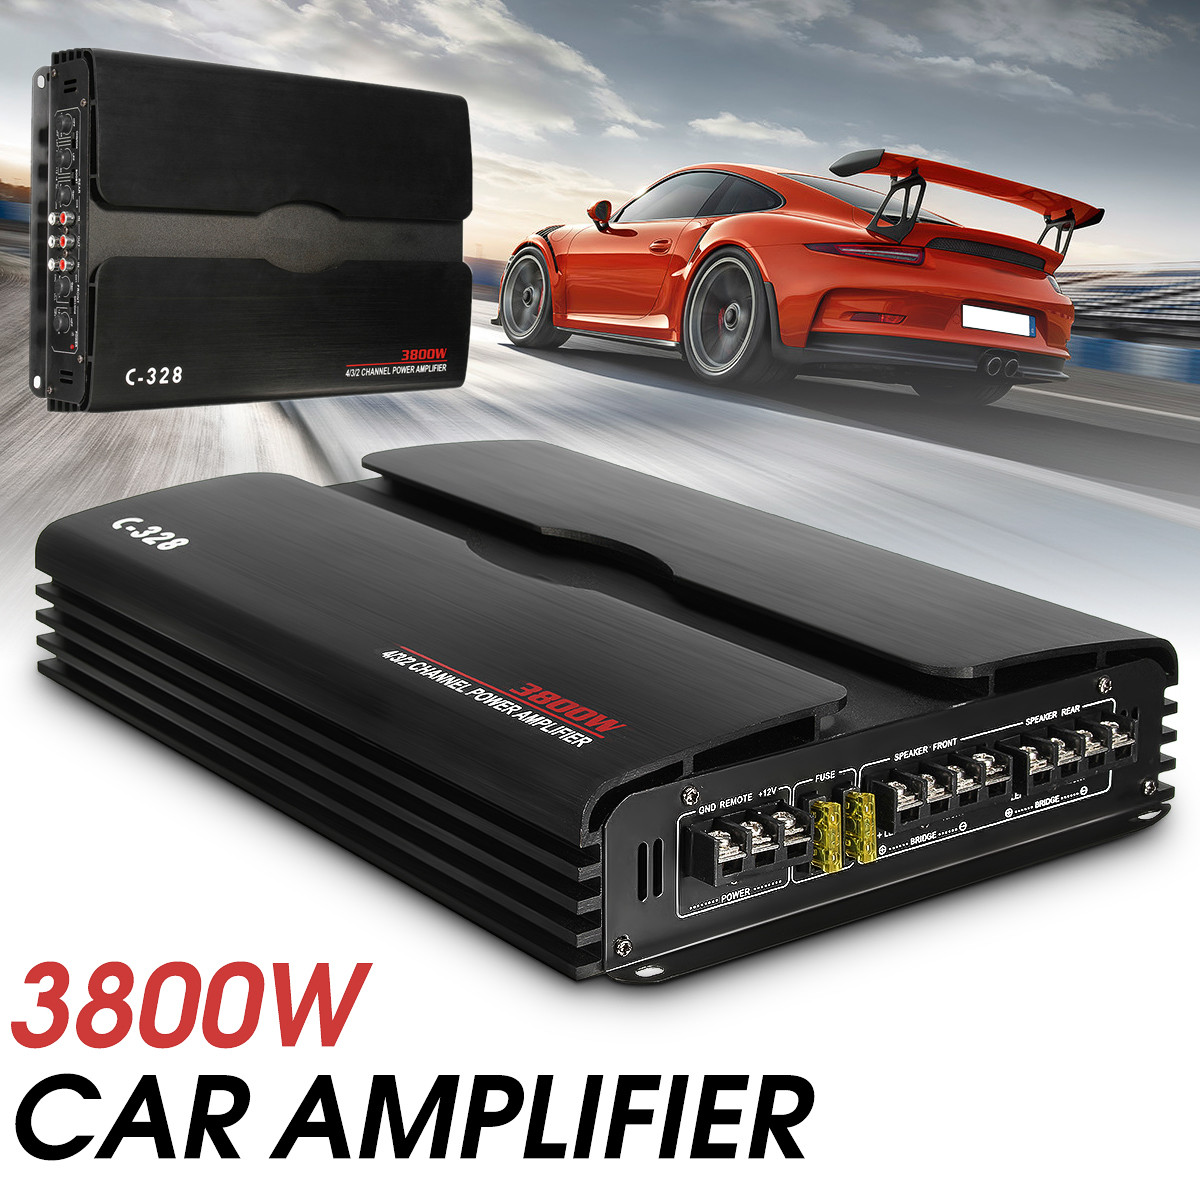 3800W Multichannel Aluminum Alloy Car Amplifier Speaker Powerful Car Audio Power Amplifier Subwoofer Car Truck Stereo Amplifier hasbro my little pony e0185 пони с блестками